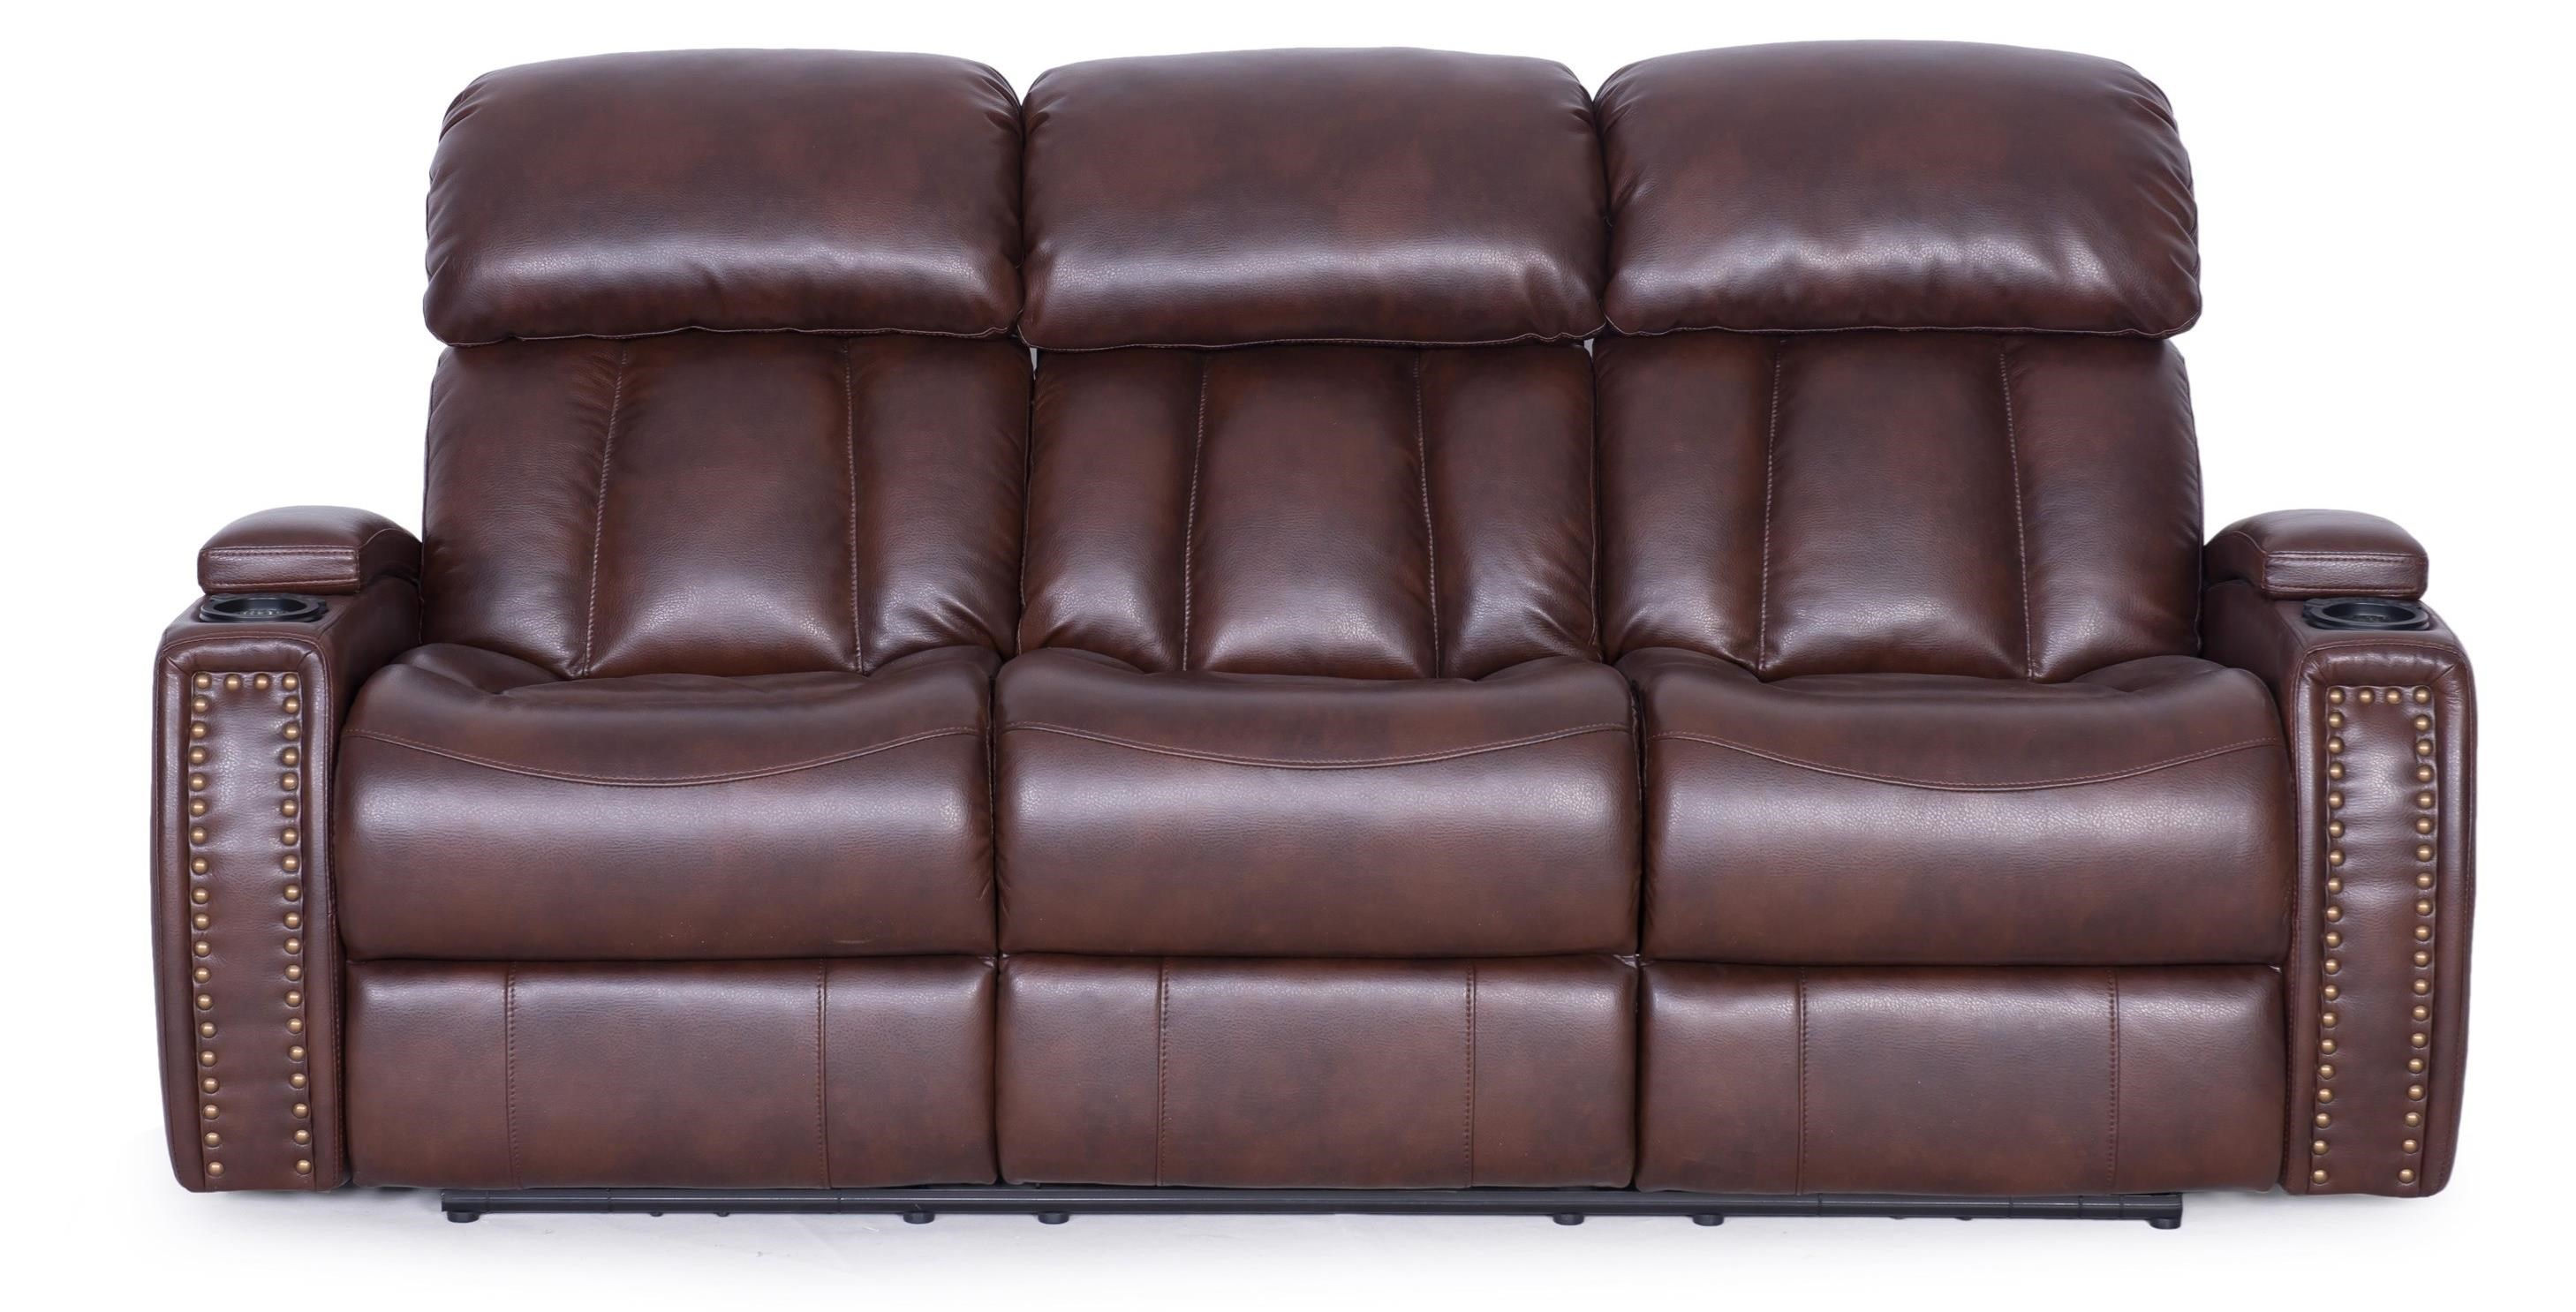 Synergy Home Furnishings 399 Power Sofa - Item Number: 399-52pwr 2270-87